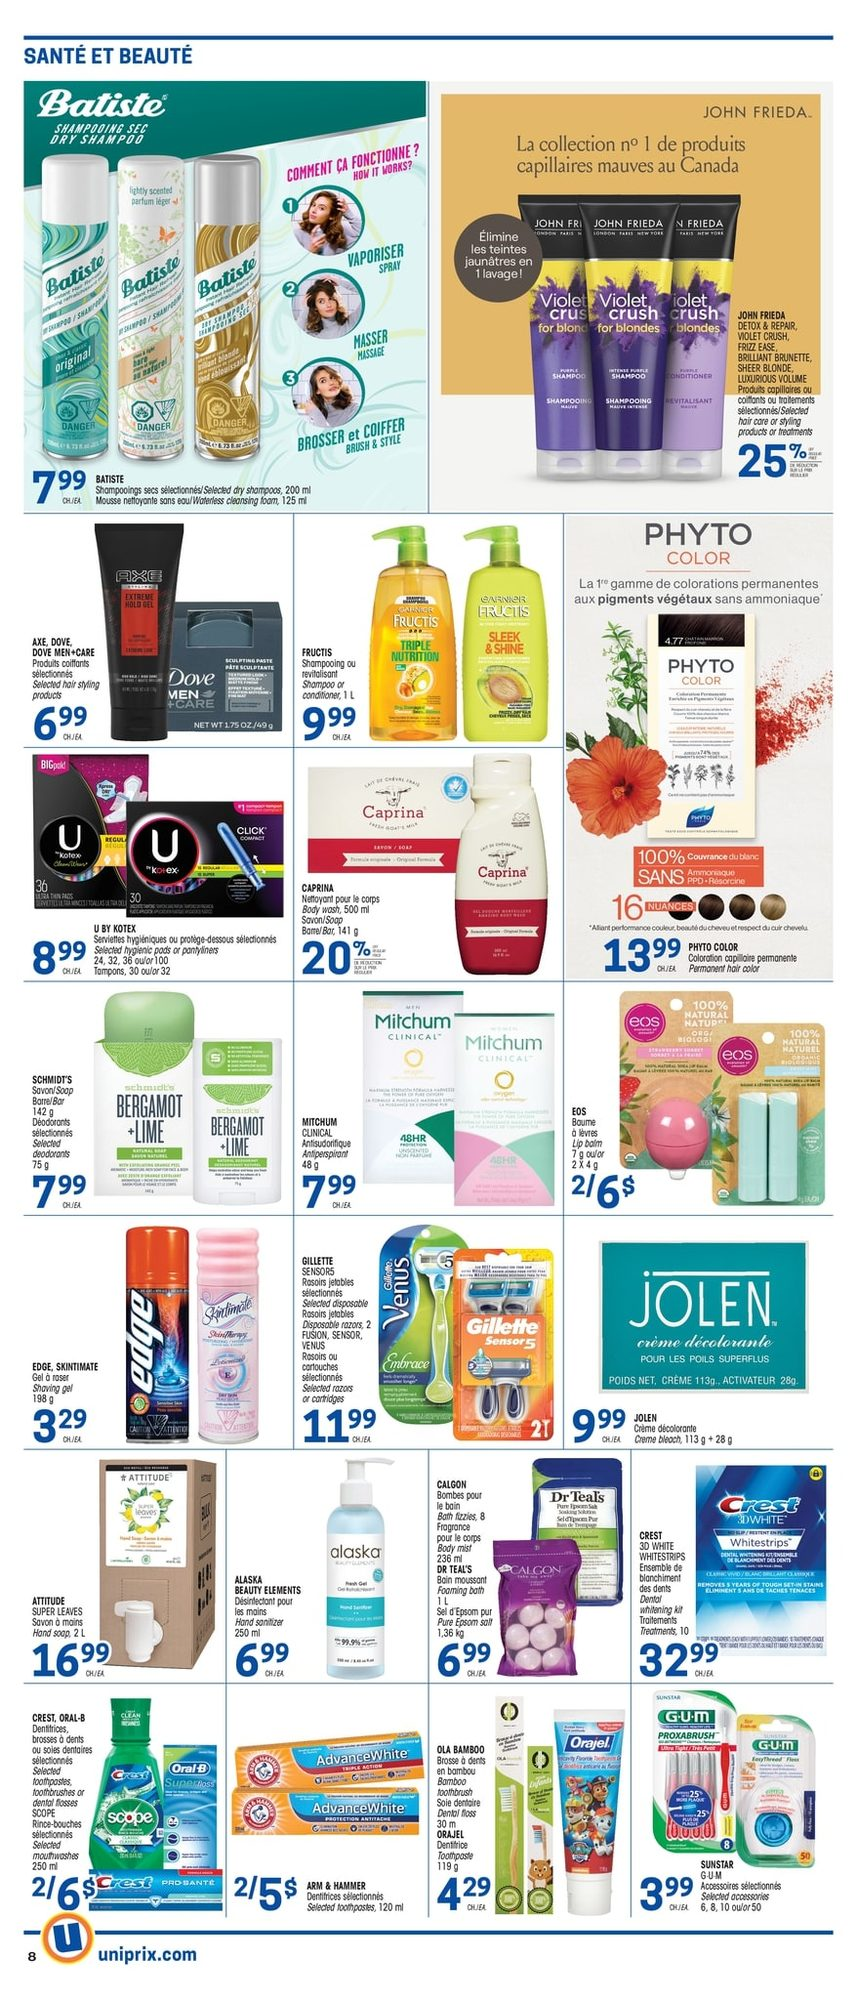 Uniprix - Weekly Flyer Specials - Page 10